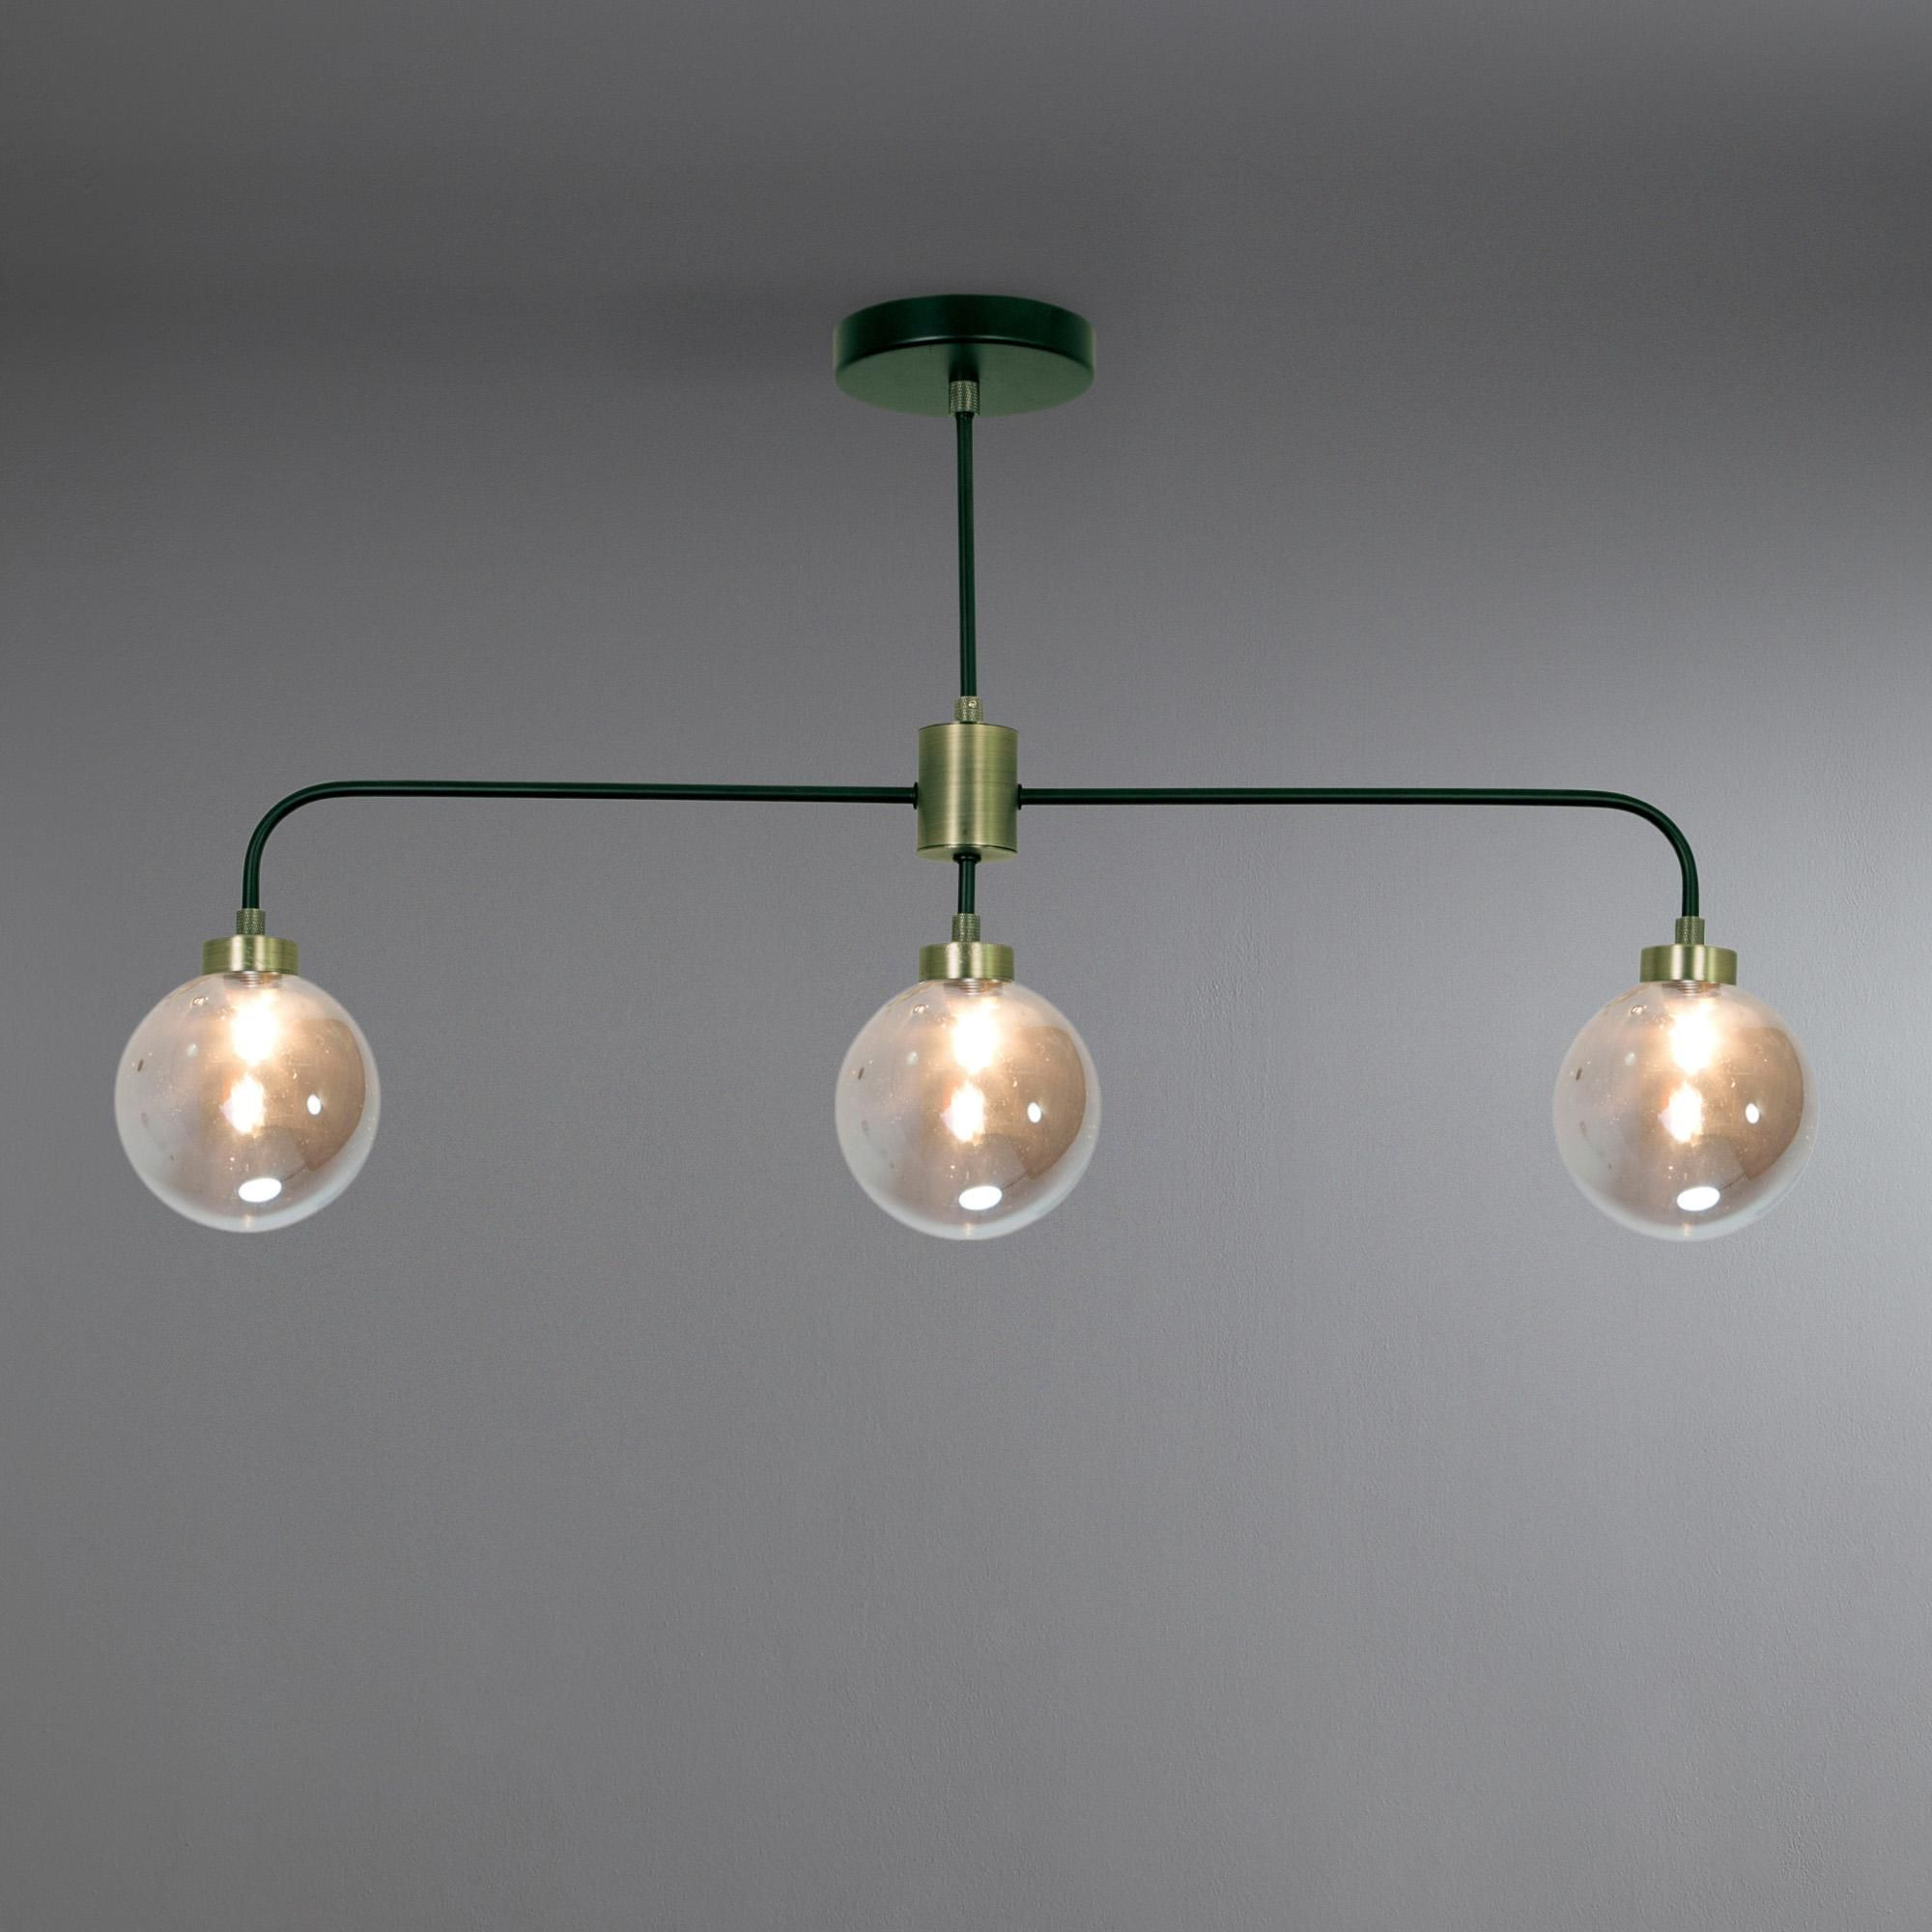 Tanner Black 3 Light Ceiling Fitting Dunelm 2 Pinterest